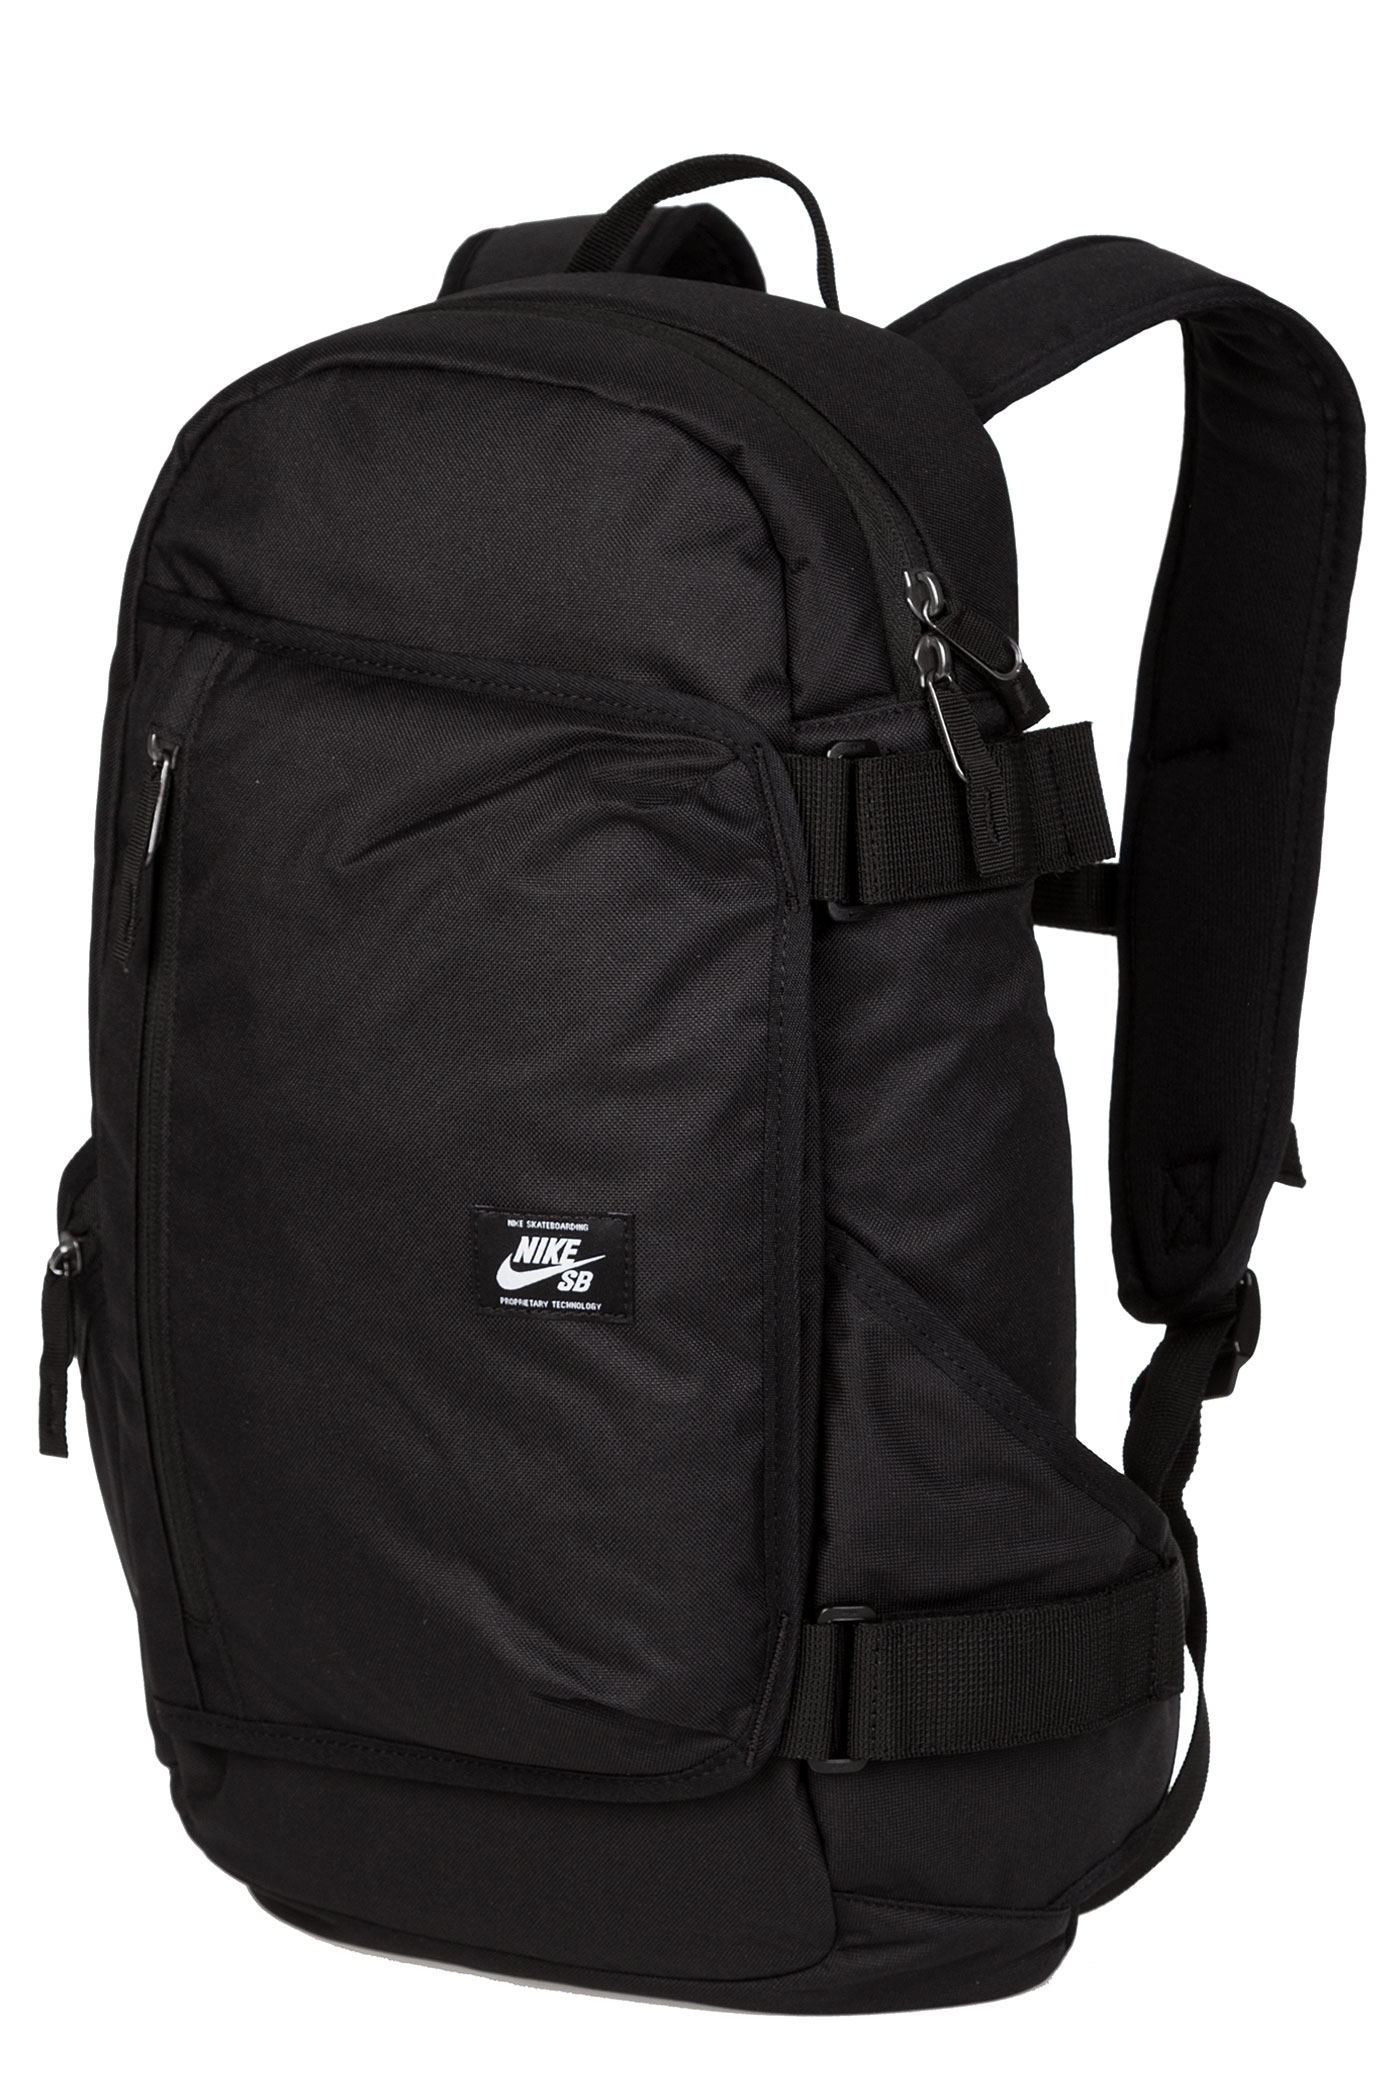 Backpack Black Nike Sb Shelter Backpack Black White Achetez Sur Skatedeluxe